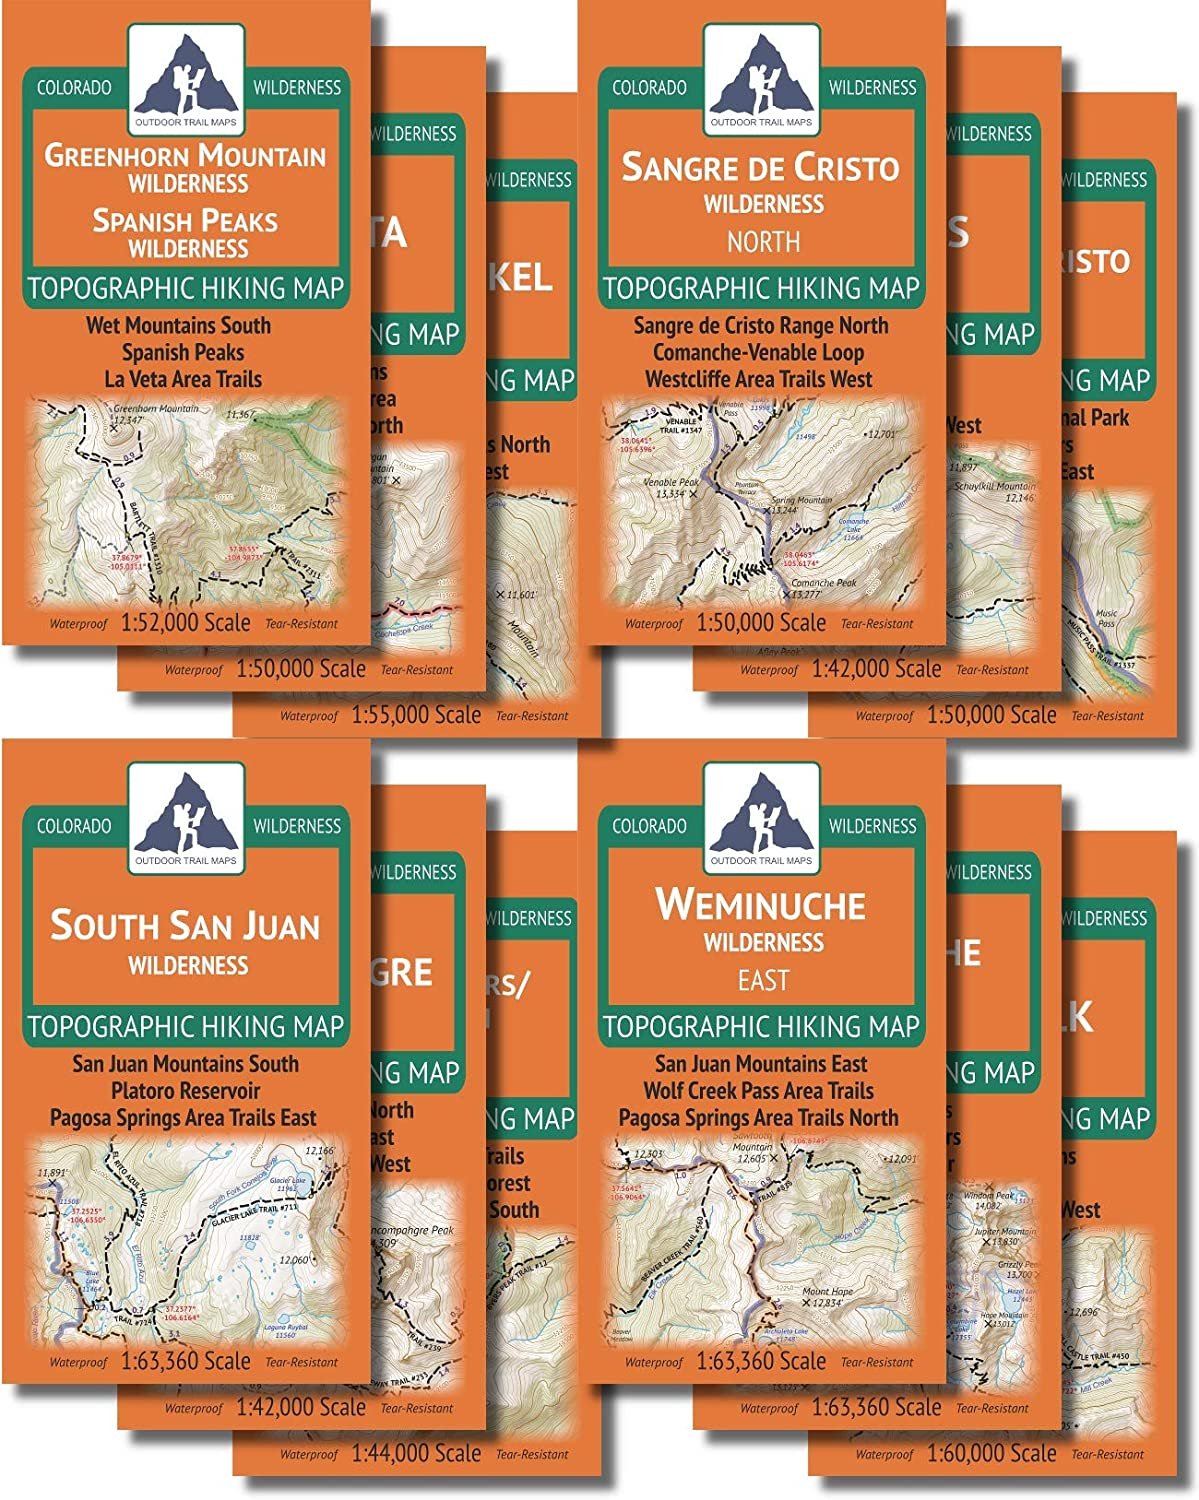 1946906530 Outdoor Trail Maps The Colorado Wilderness Map Series, Volume 2 - Topographic Hiking 12 Map Pack (2019) 81WJxwKOQTL.SL1500_